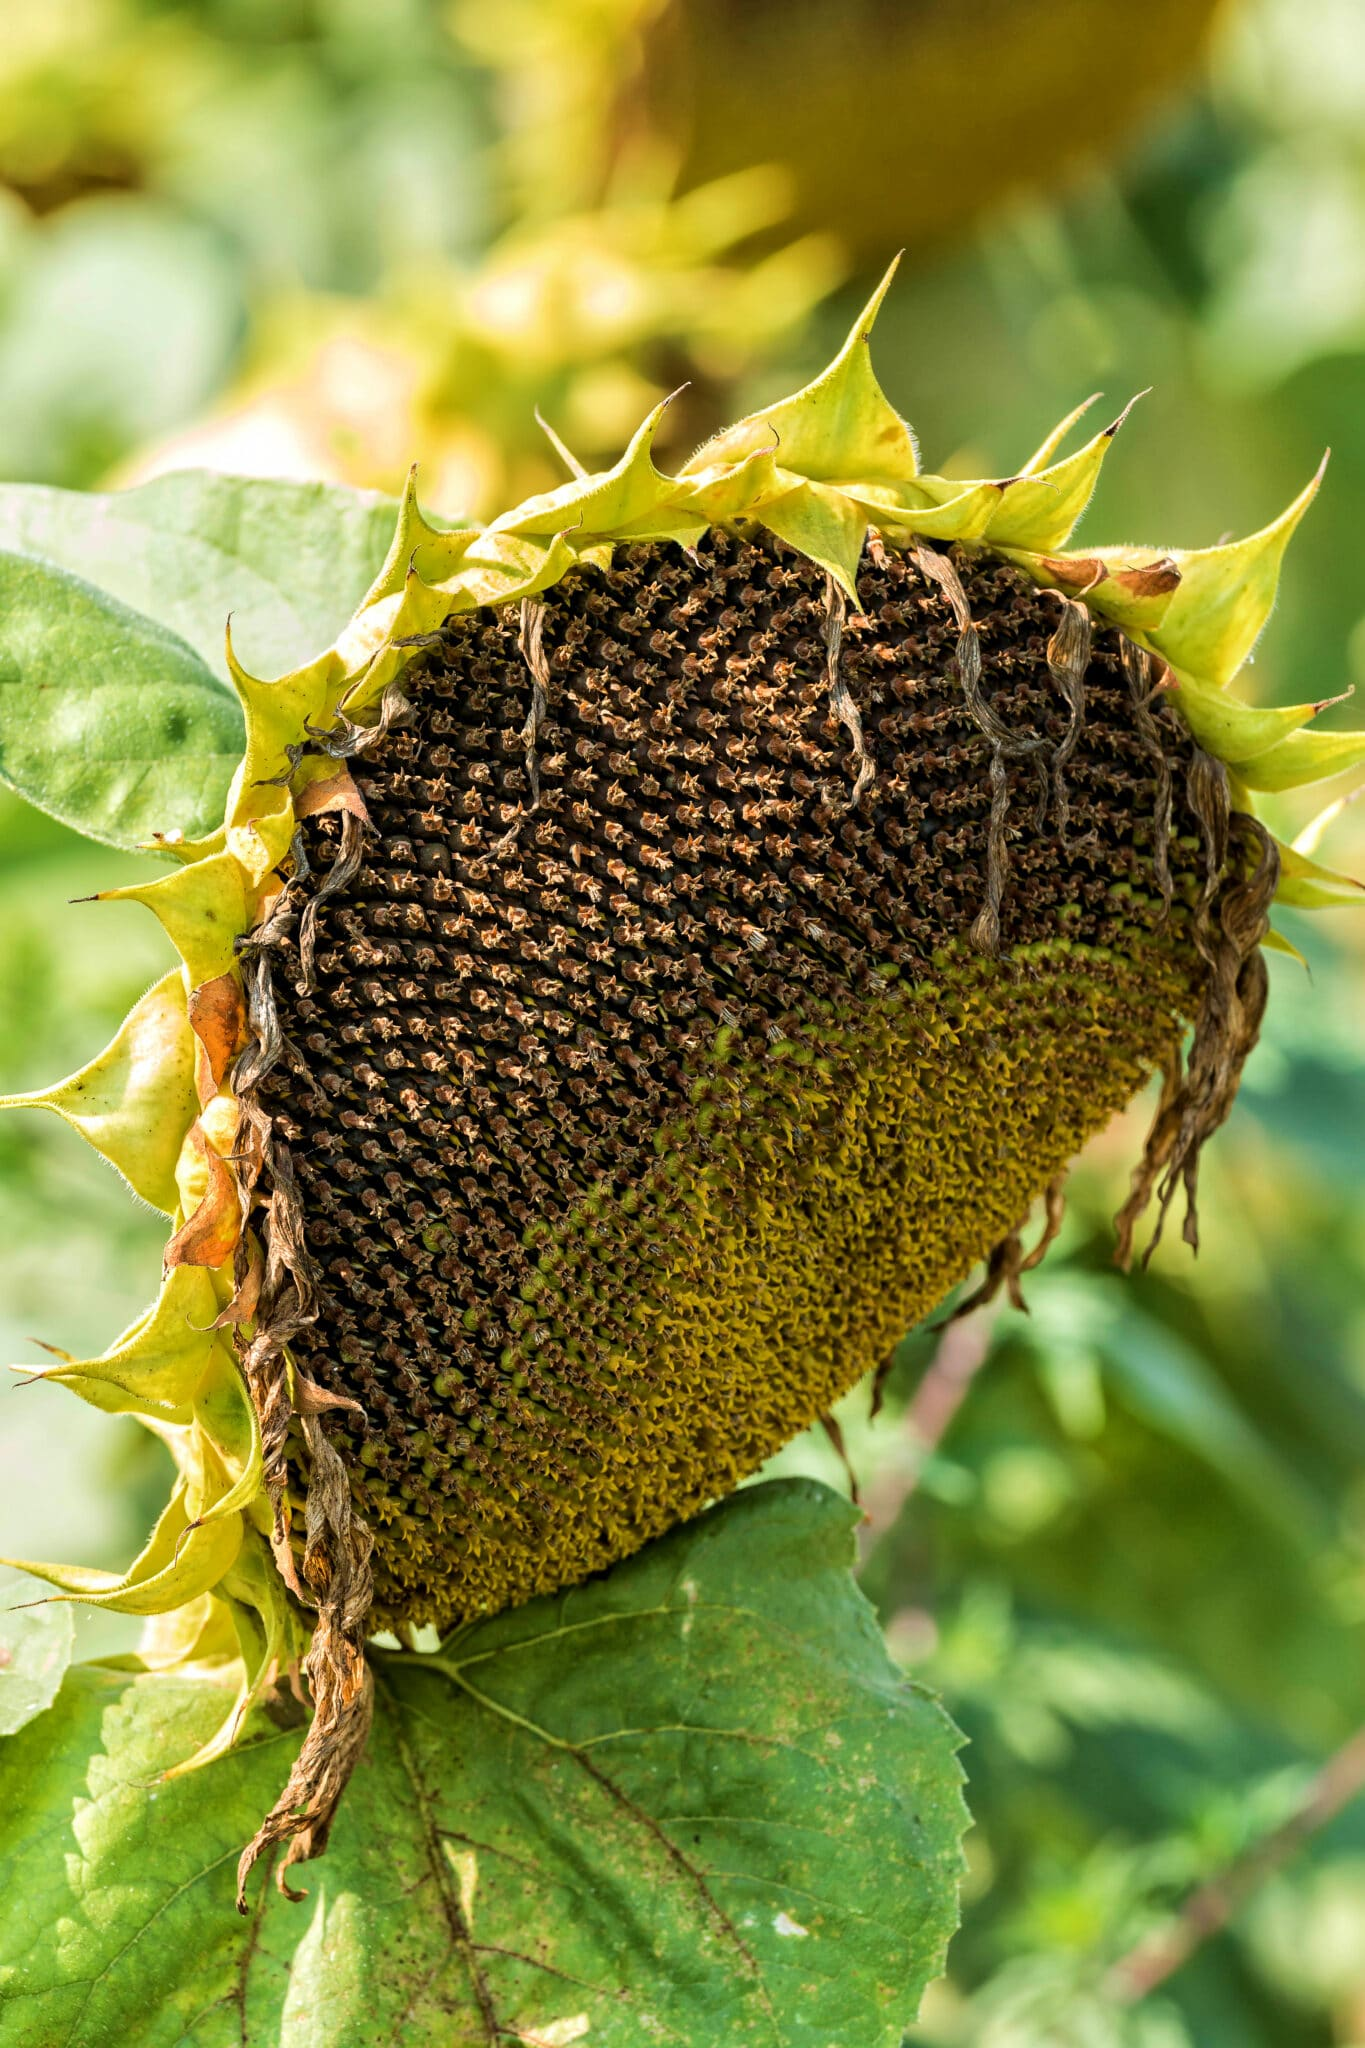 A sunflower head read for harvest.  The leaves have died back and the head is droopy and filled with sunflower seeds.